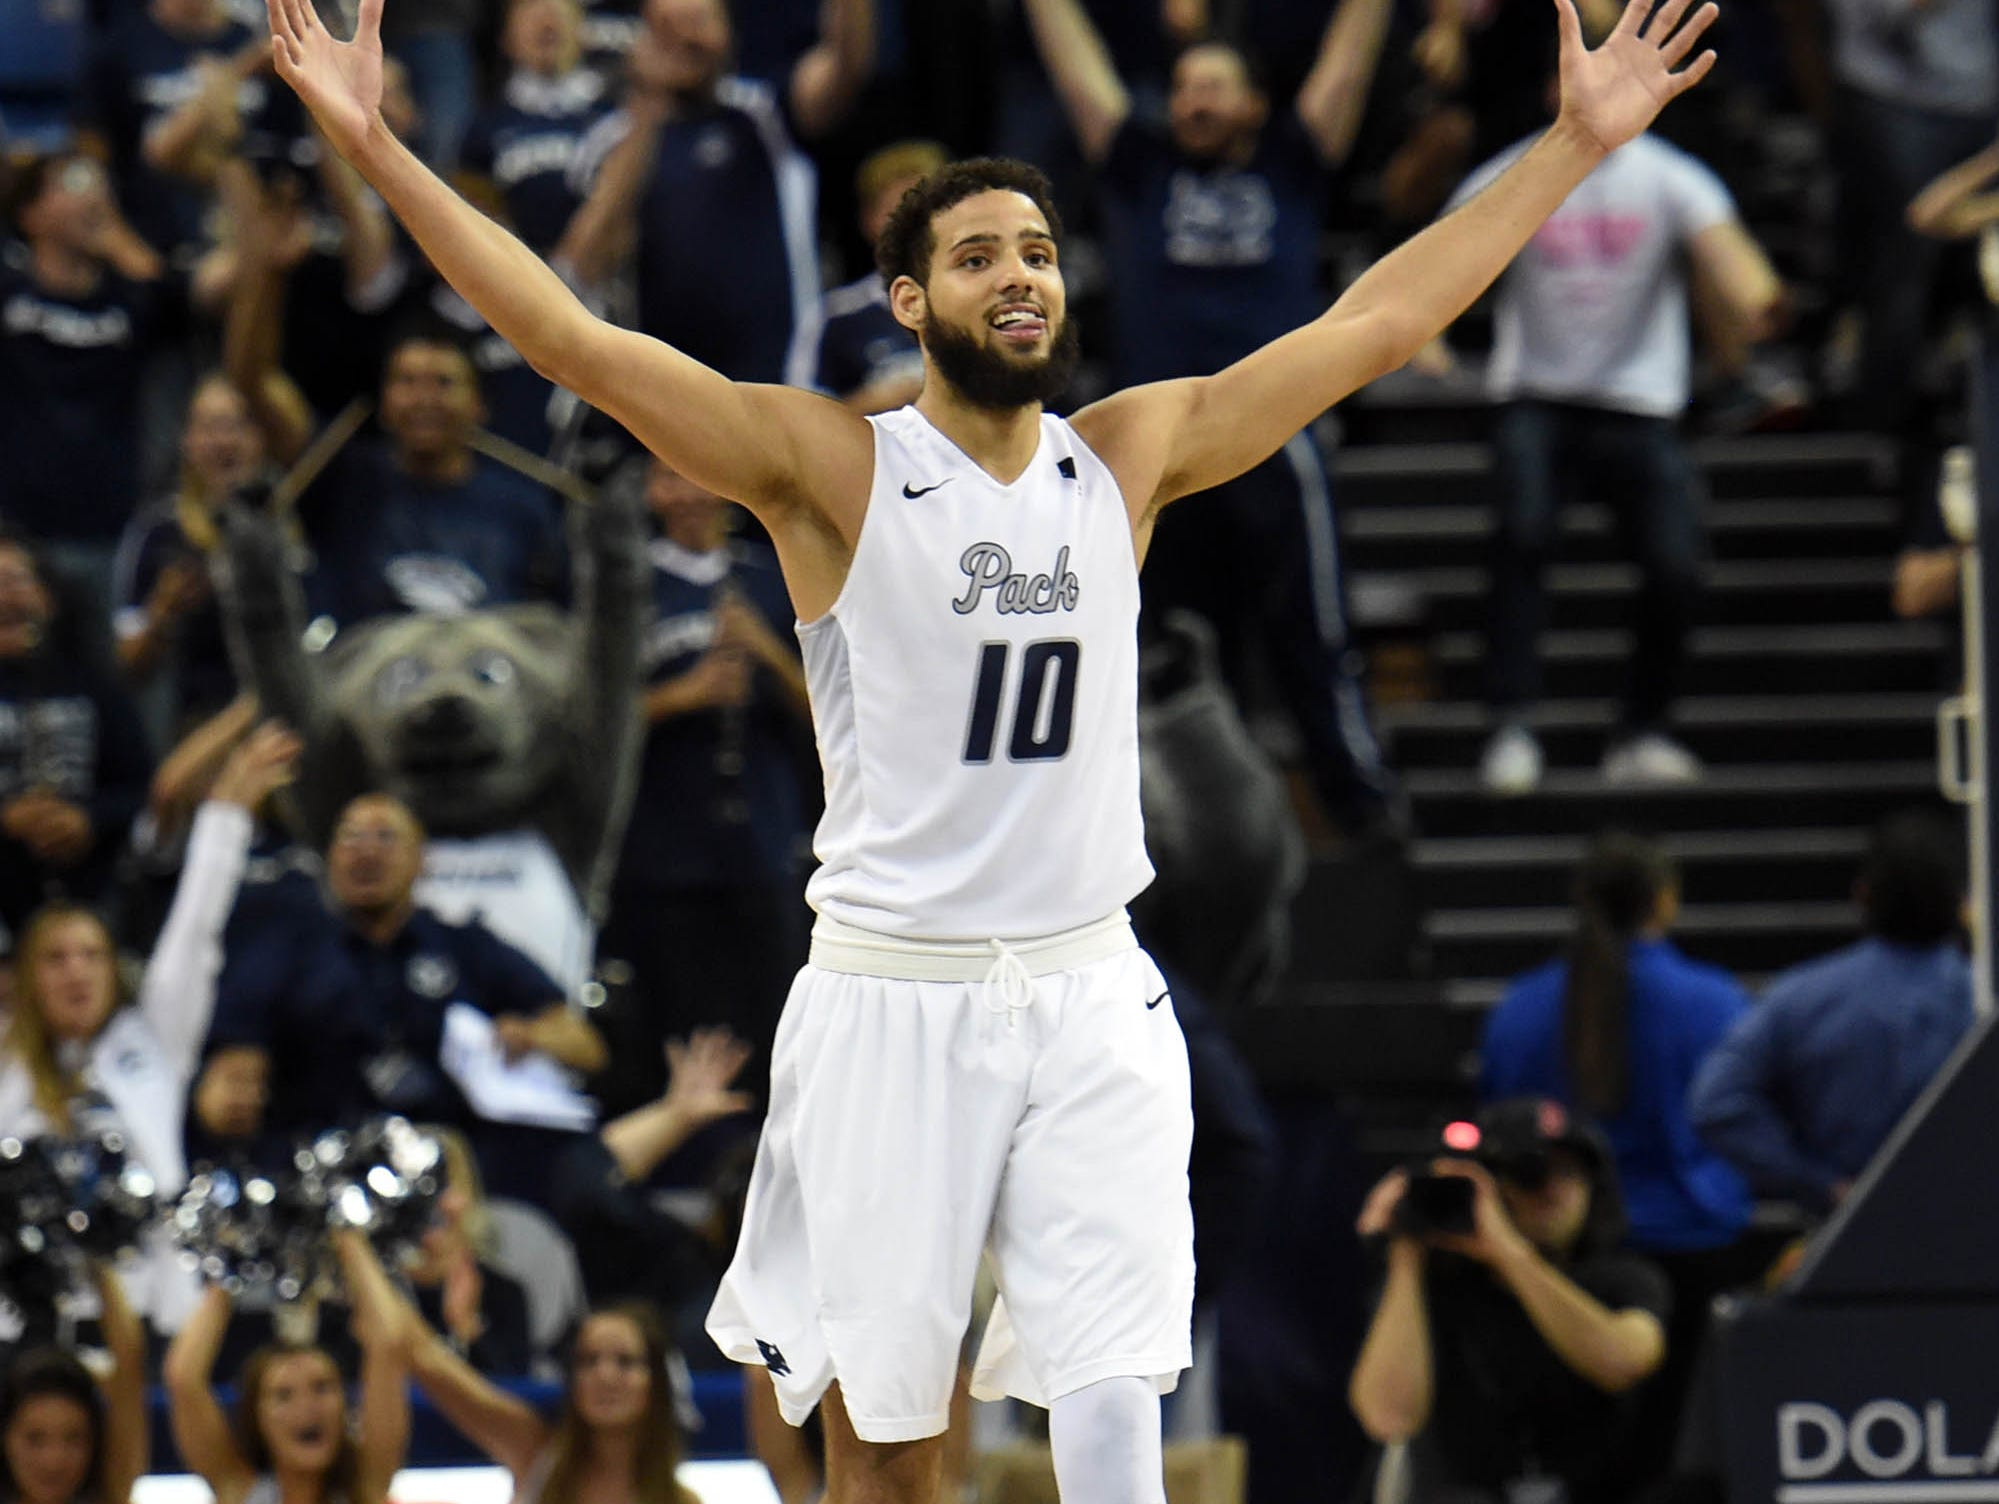 Nevada's Caleb Martin celebrates his shot dropping in with a second left on the clock late in the second half of Monday's game against Rhode Island at Lawlor Events Center on Nov. 13, 2017. Nevada won 88-81.